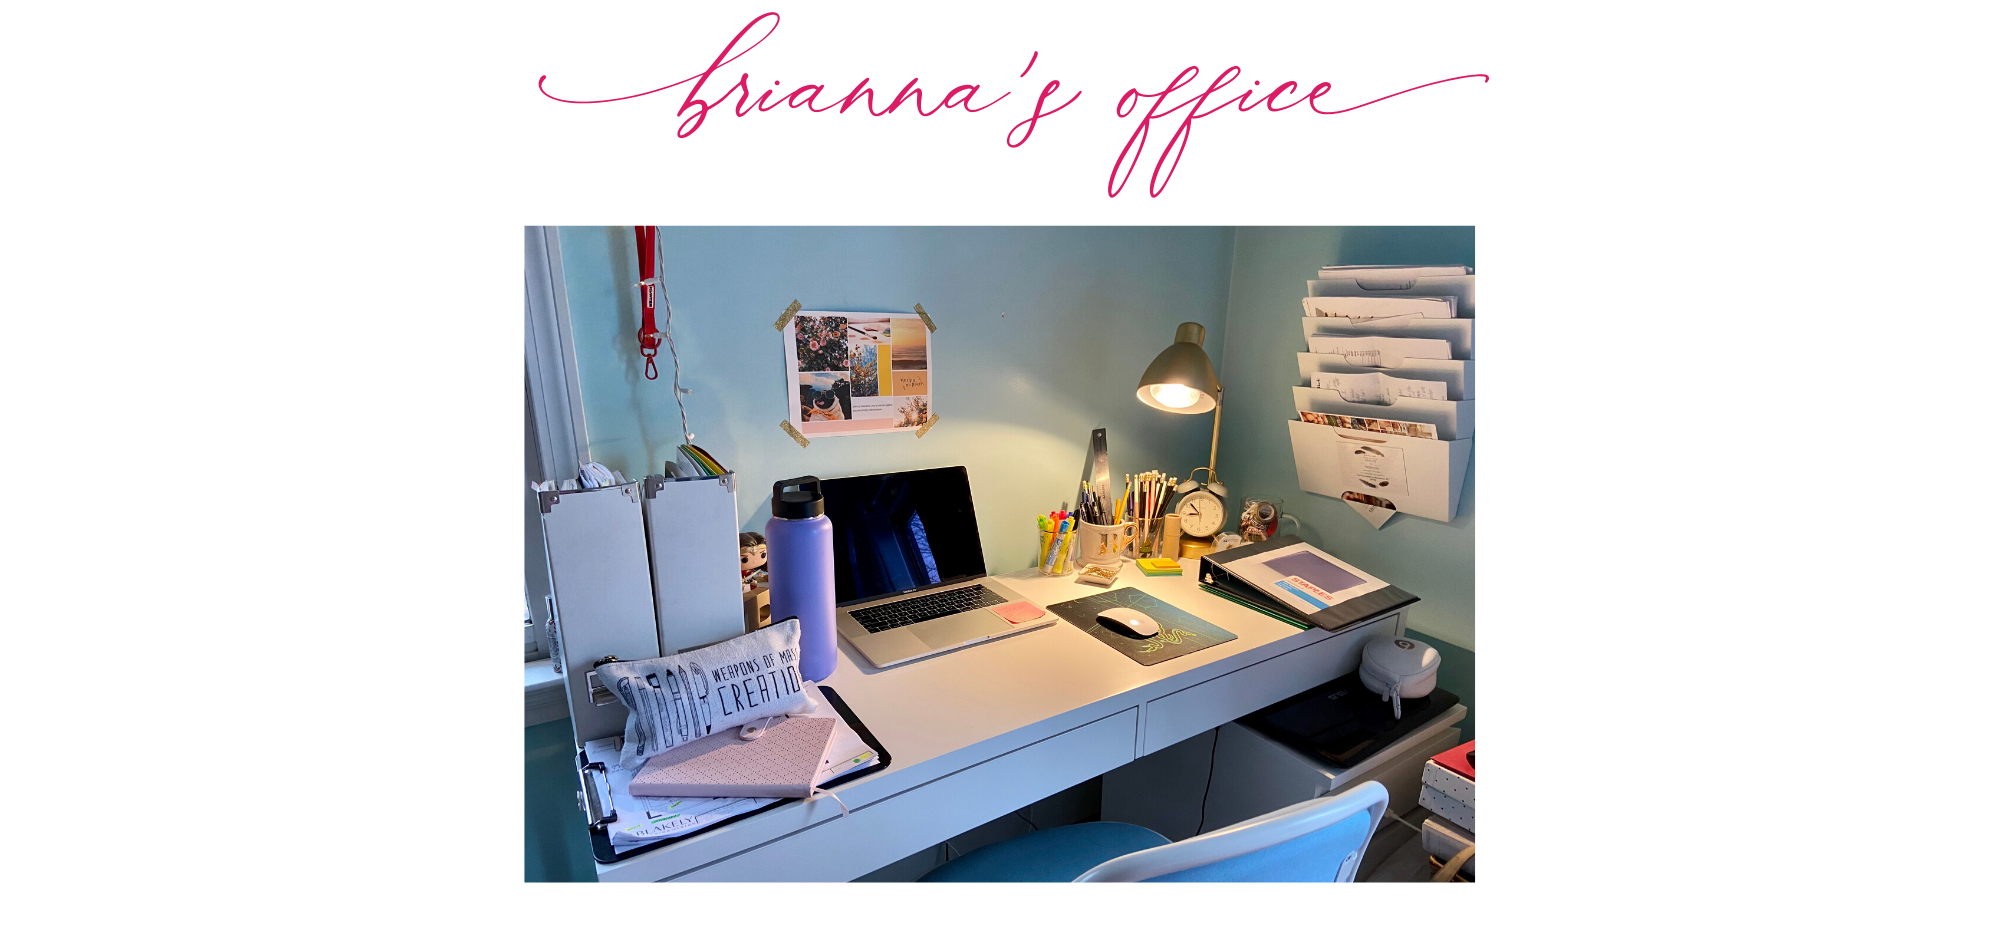 brianna blakely interior design show home office spaces